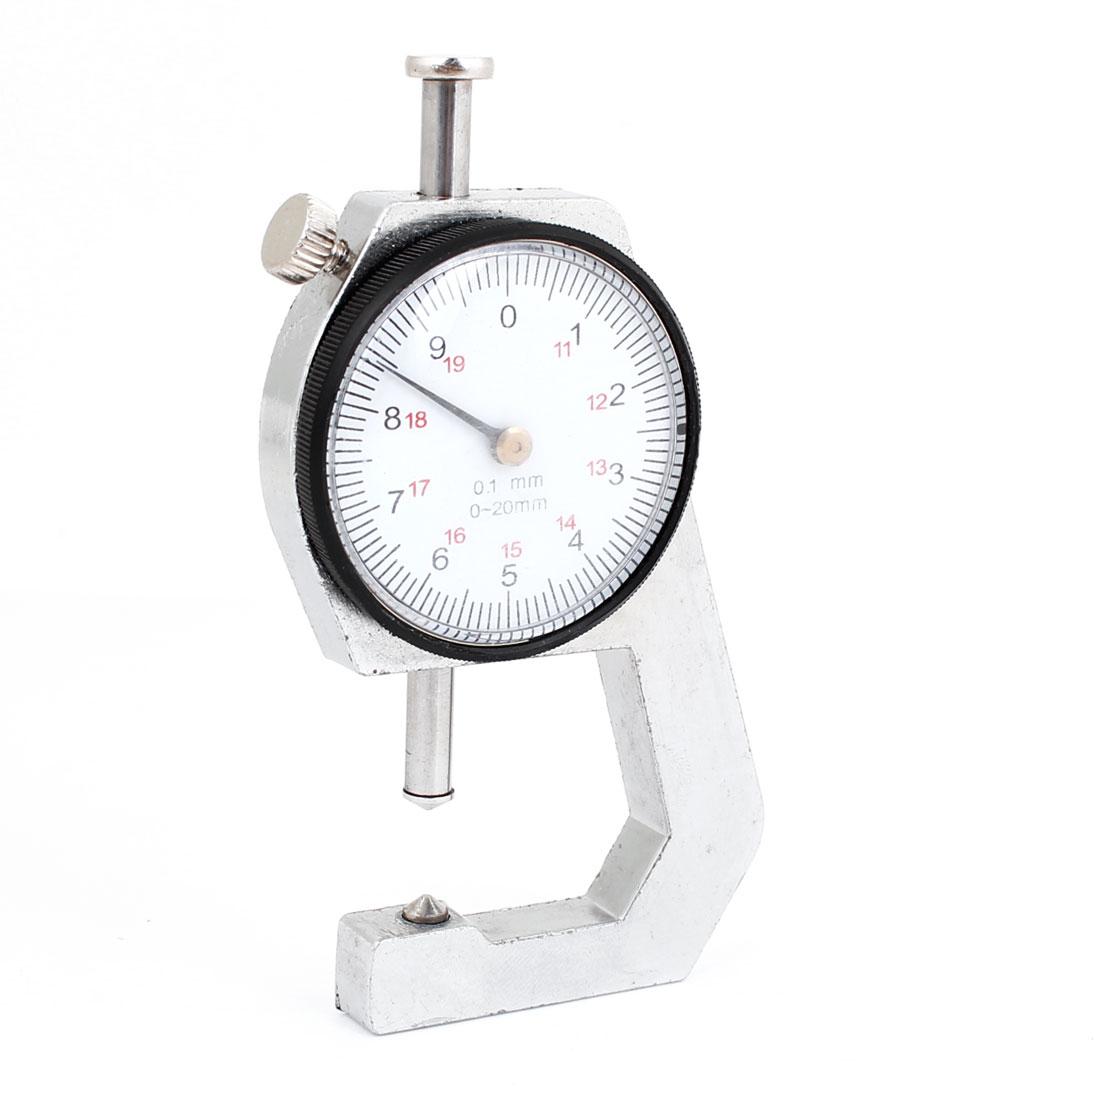 0.1mm Precision Dial Thickness Gauge Meter Measure Tool 0 to 10mm